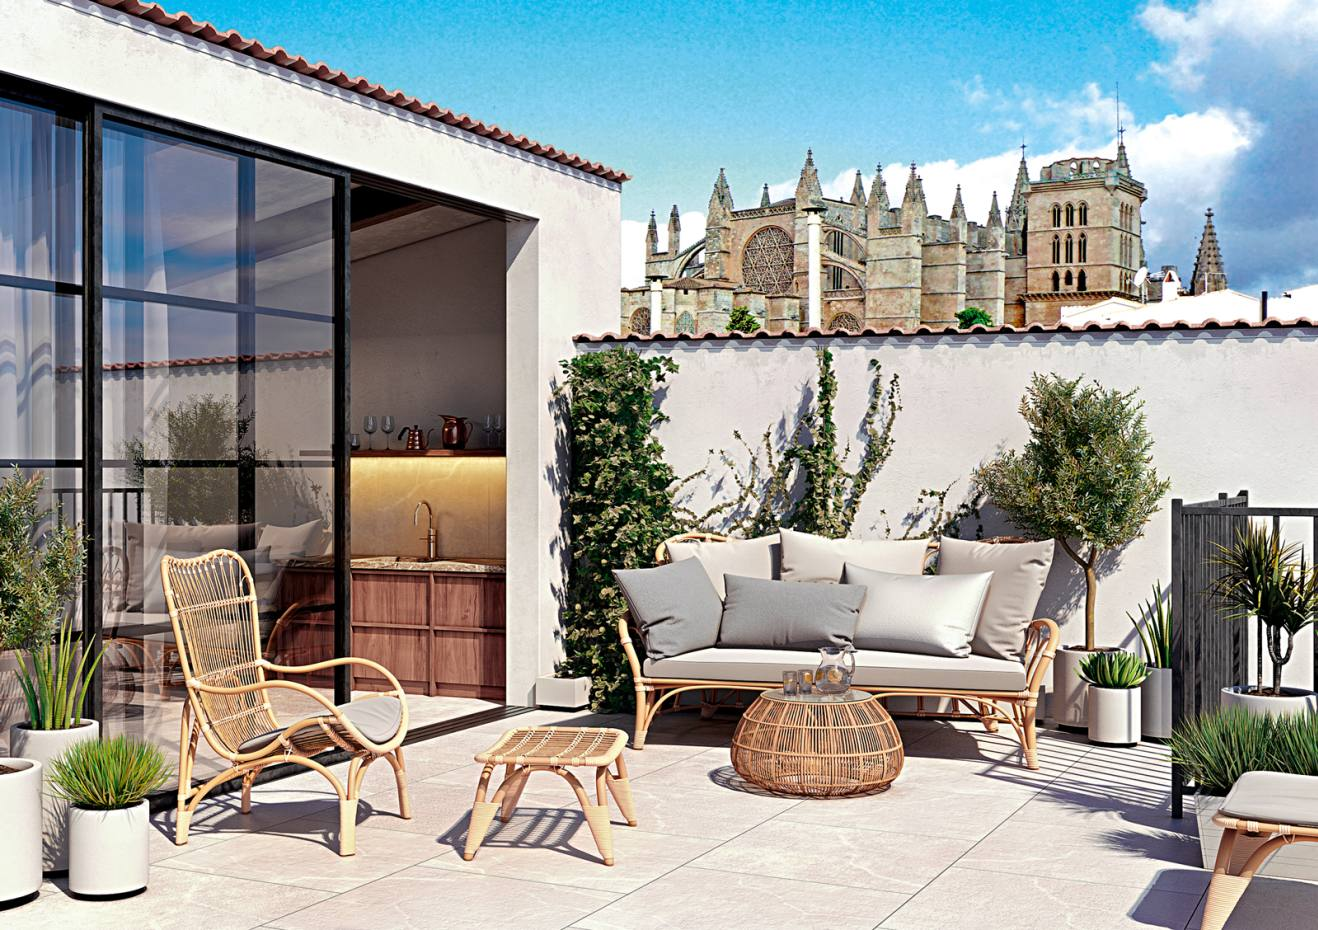 In Palma de Mallorca's Old Town, the 16th-century palace Pont 1 Vic now houses nine modern apartments with period features, €600,000-€4.1m